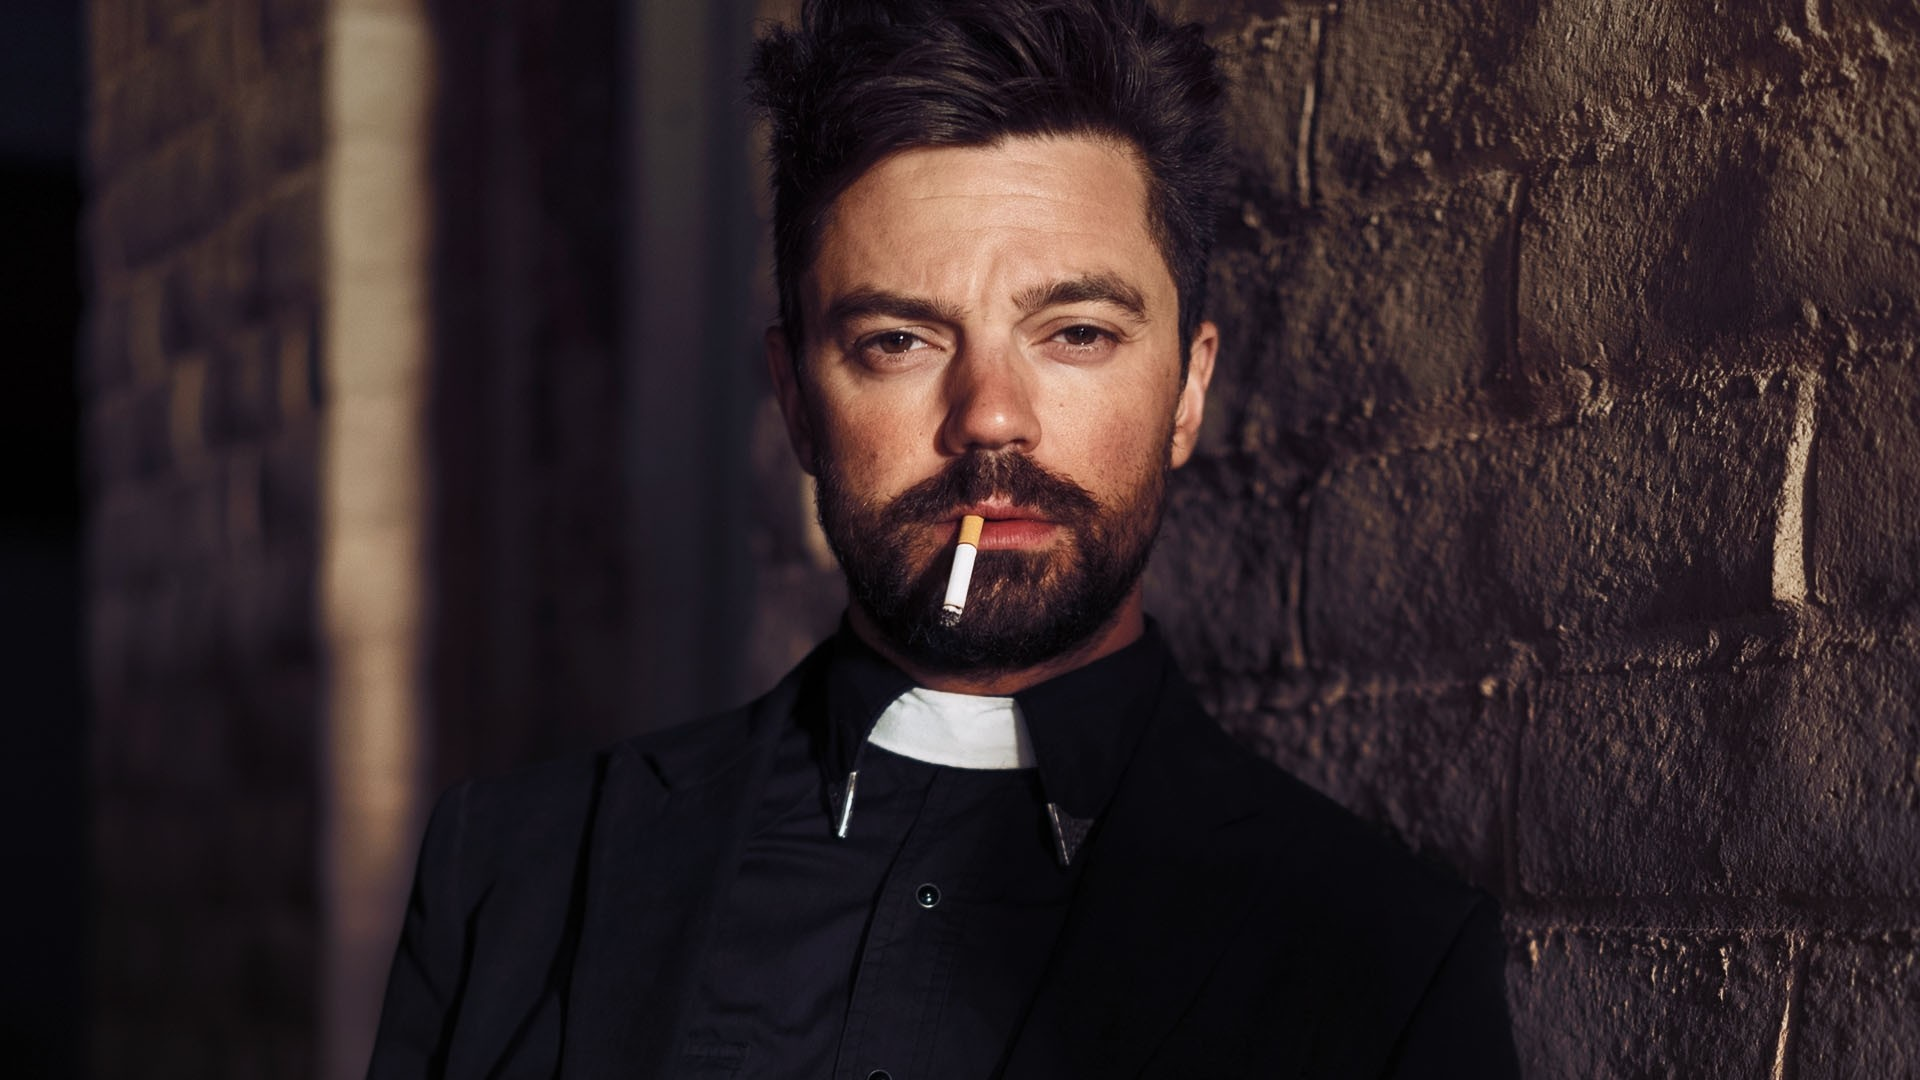 1920x1080 Preacher Source: Keys: preacher, television, wallpaper, wallpapers.  Submitted Anonymously 1 year ago